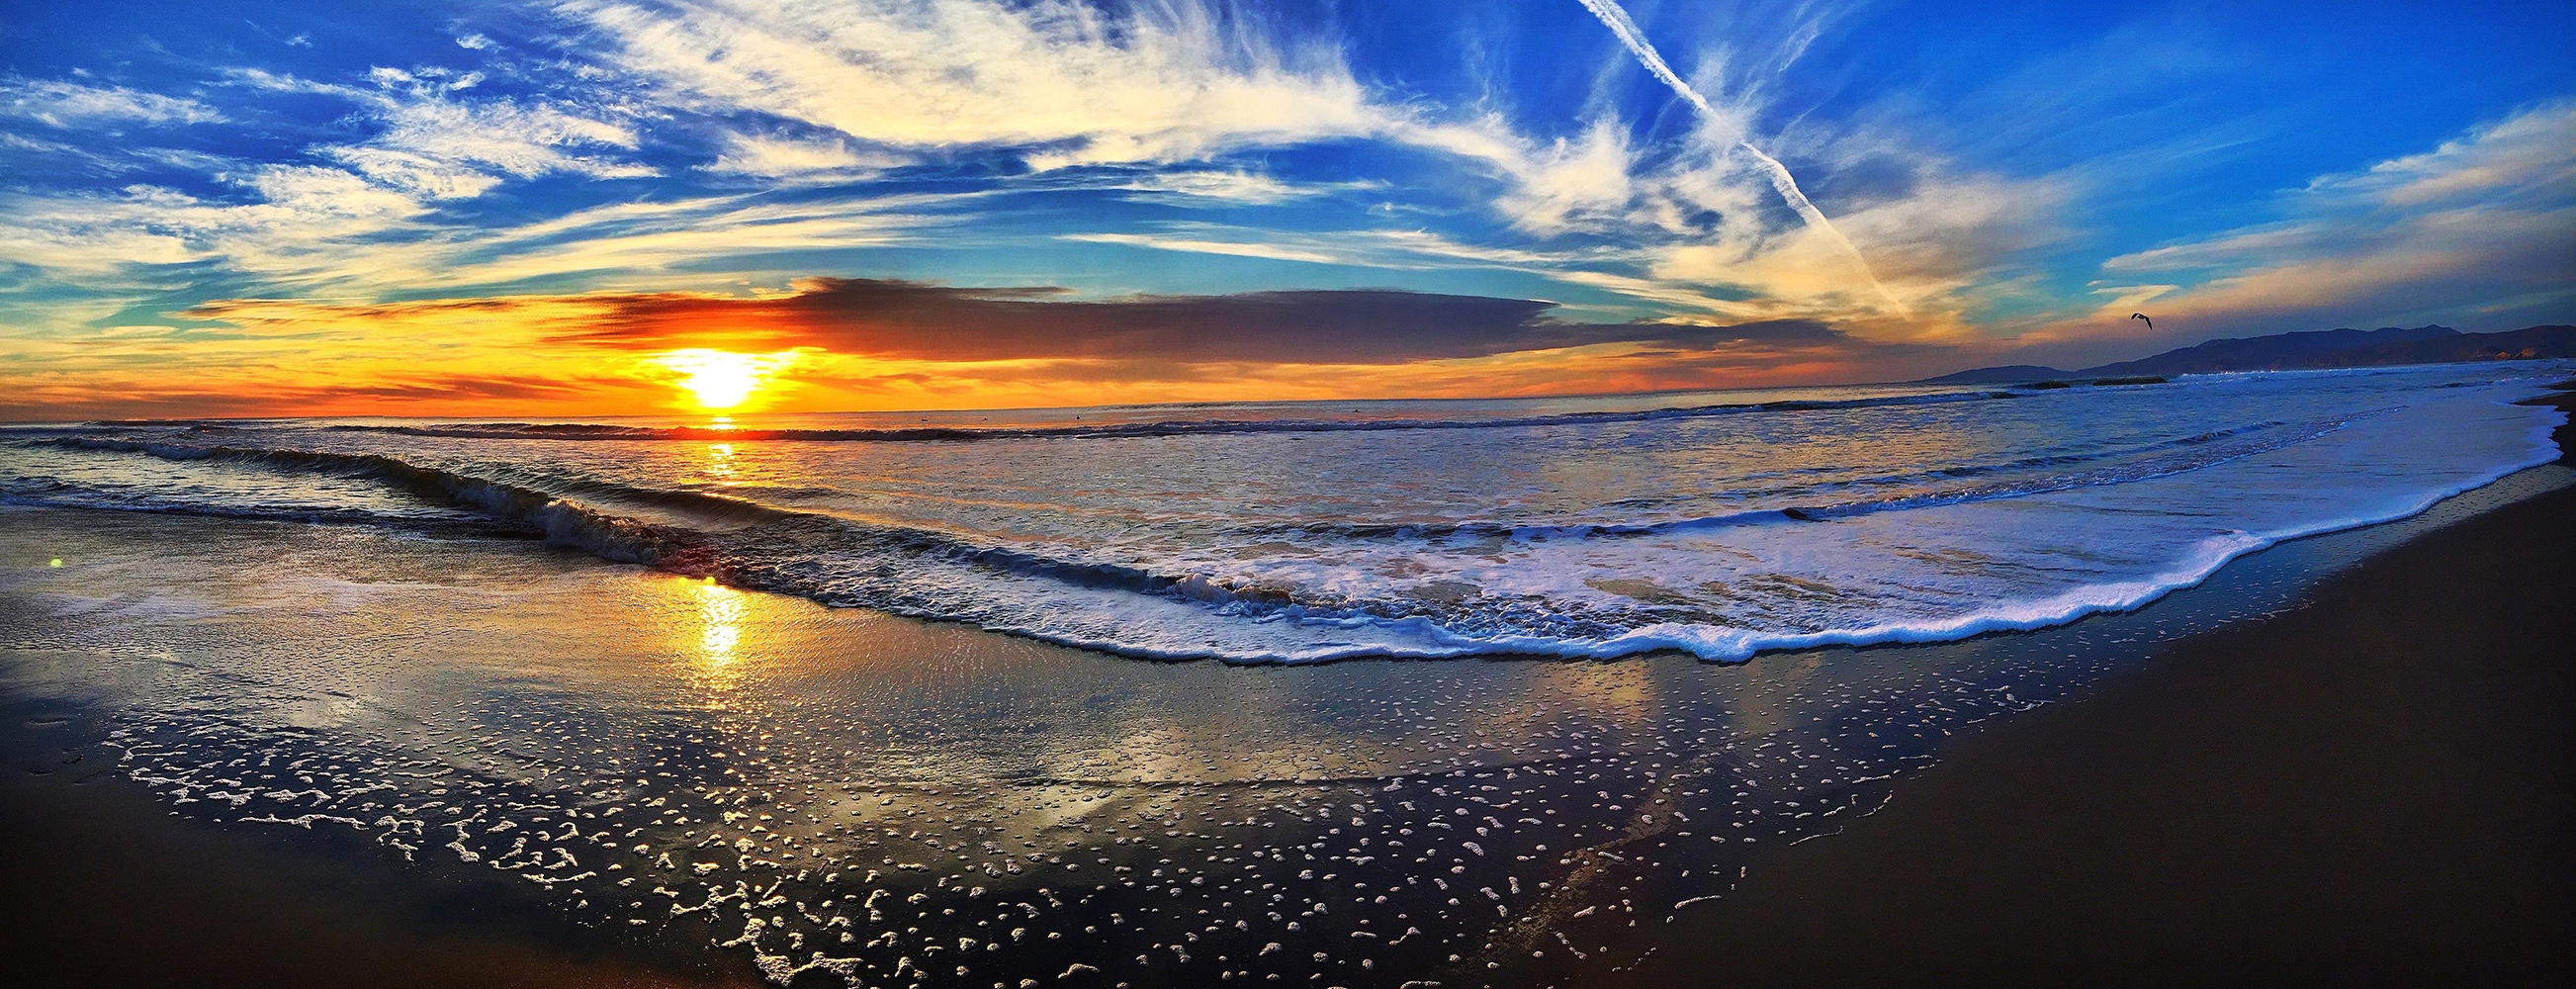 Panoramic beach at sunset